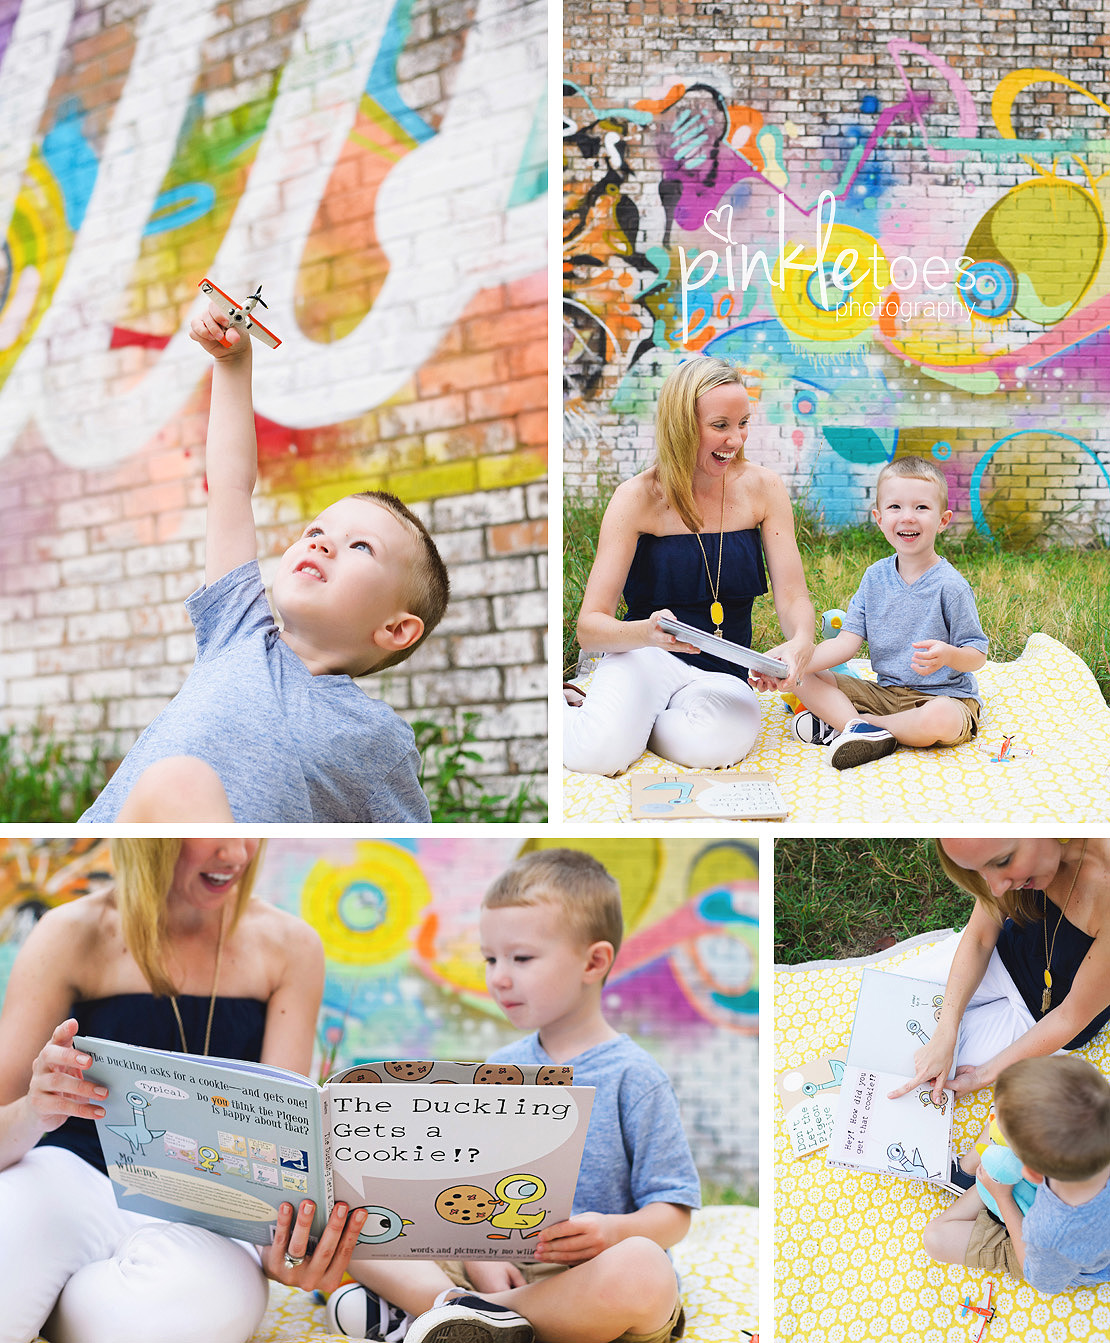 austin-colorful-bright-family-kids-hello-urban-photography-08